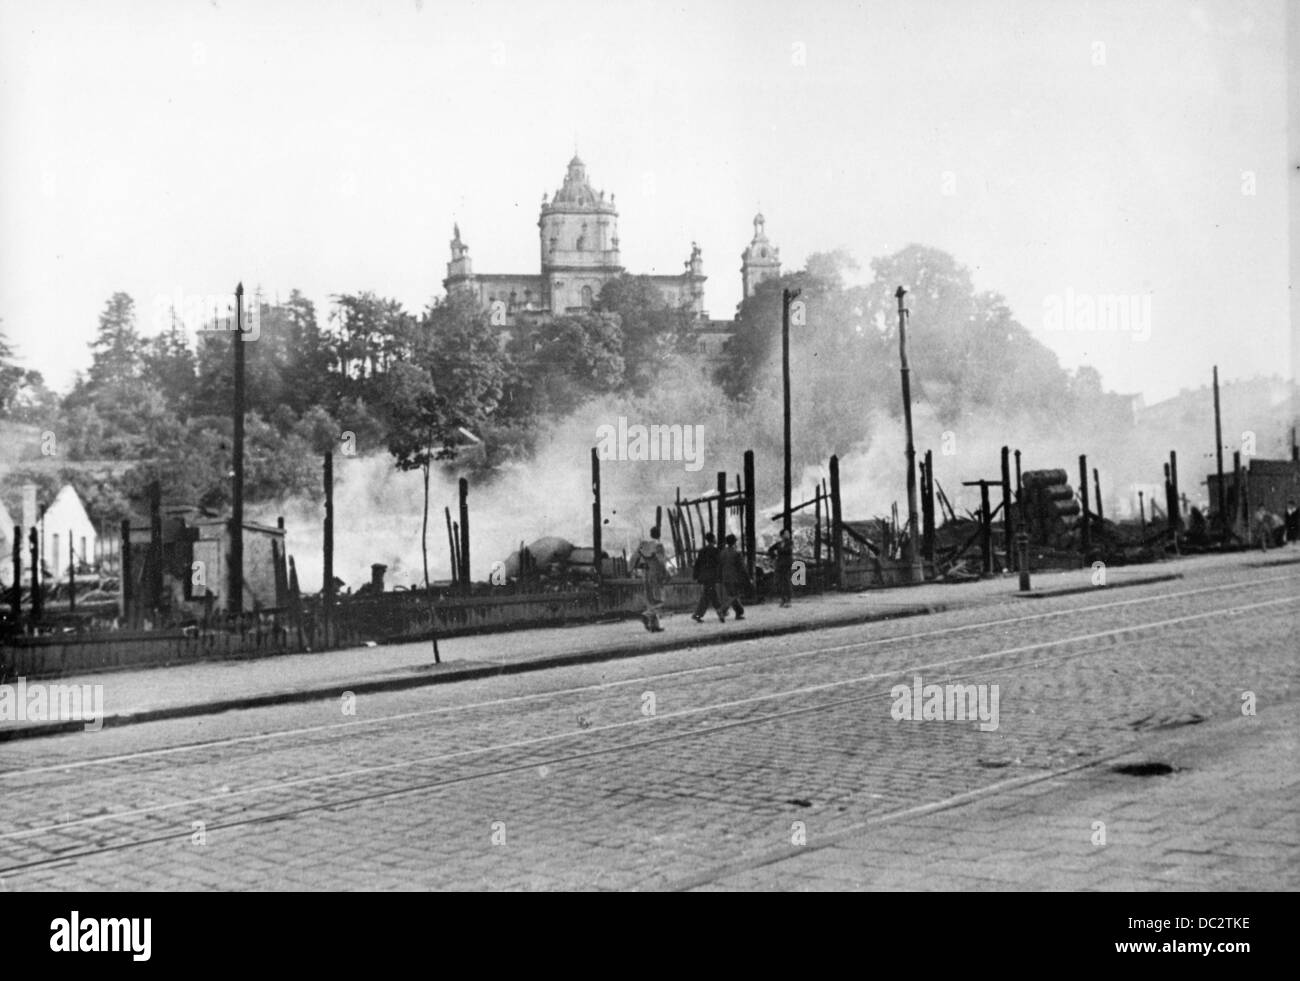 "The Nazi Propaganda! on the back of the picture reads: ""Advancement into Lviv. Burning barracks along the main street."" Stock Photo"